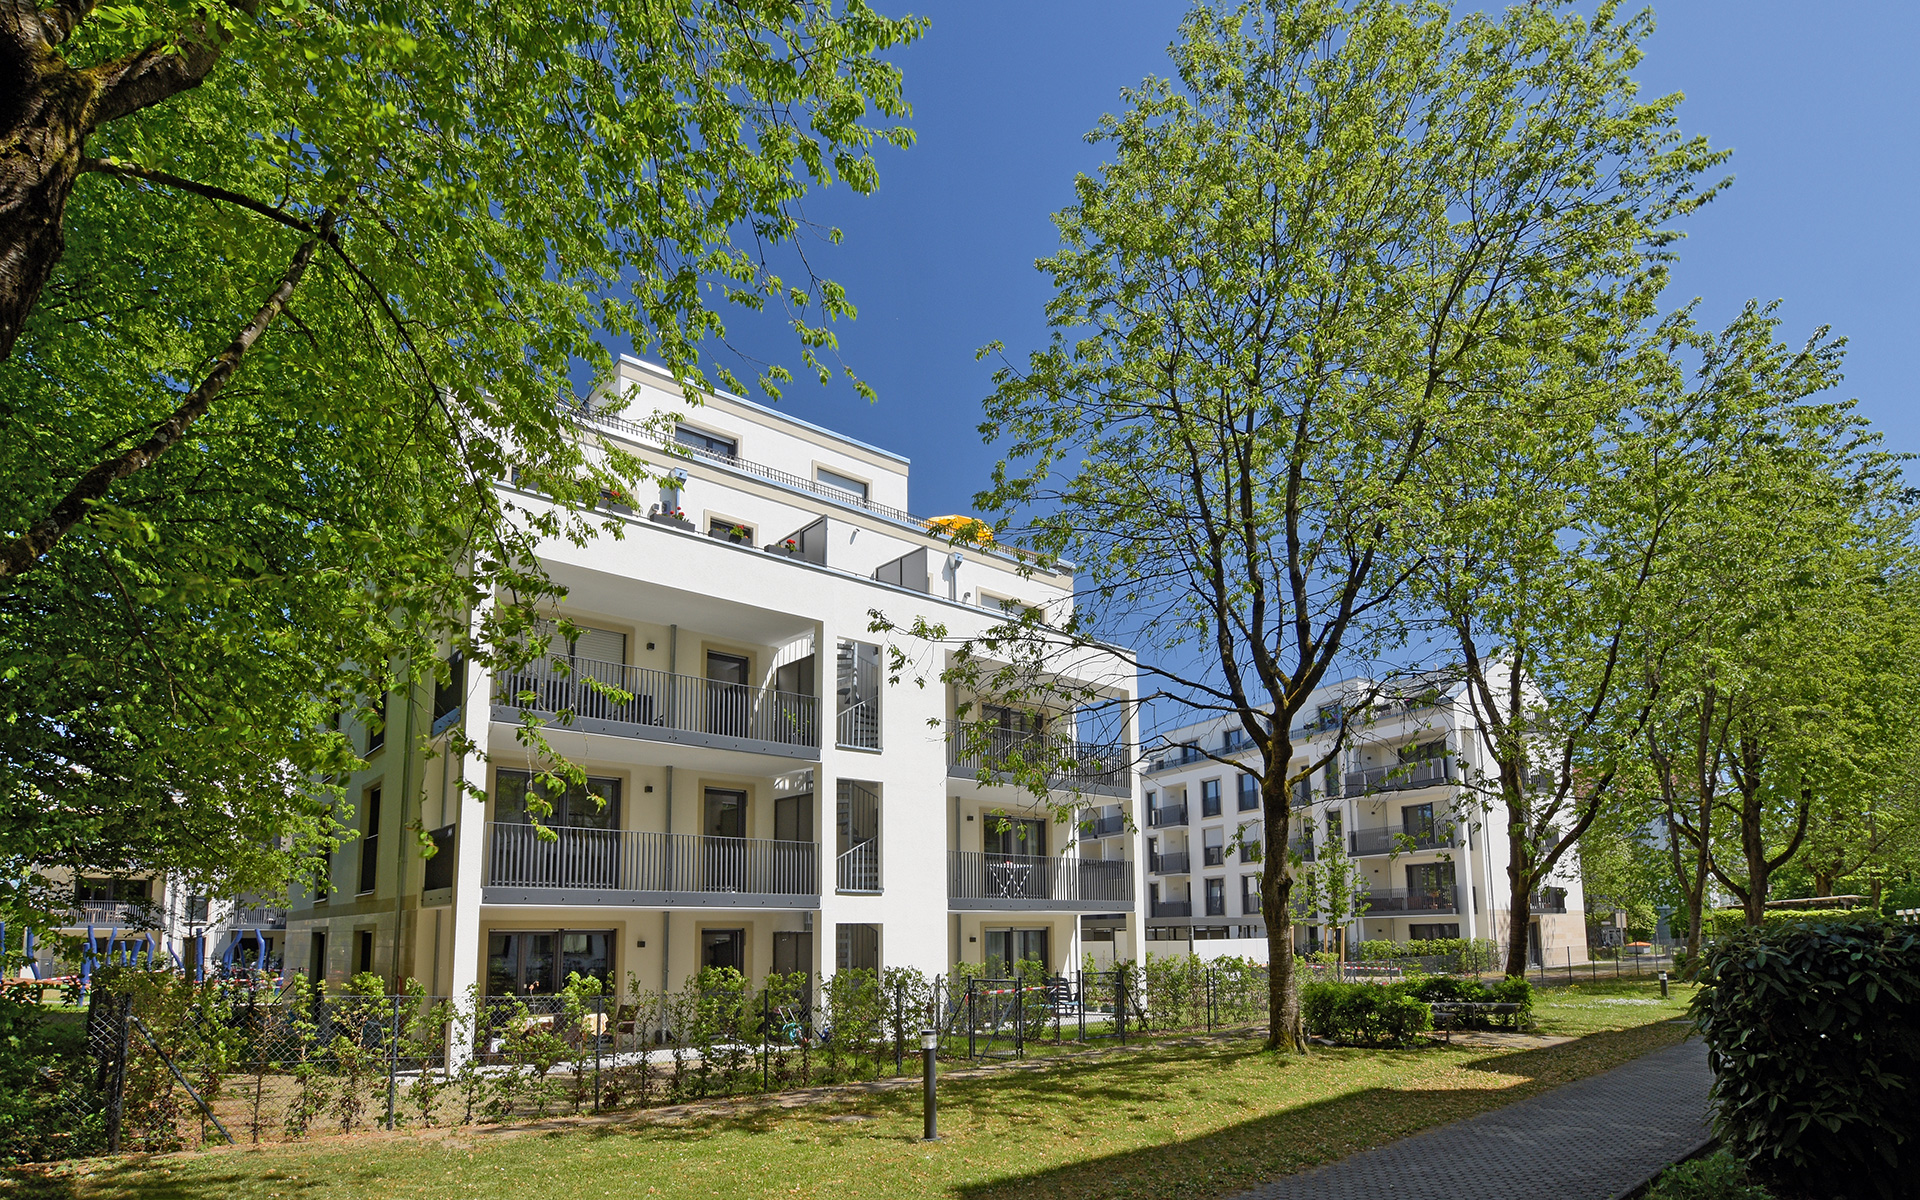 With TRUDI160 - condominiums in Berg am Laim - a new residential complex with 69 condominiums is being built in 2018: The five residential buildings enclose a generous park-like inner courtyard with partly wonderful old trees.